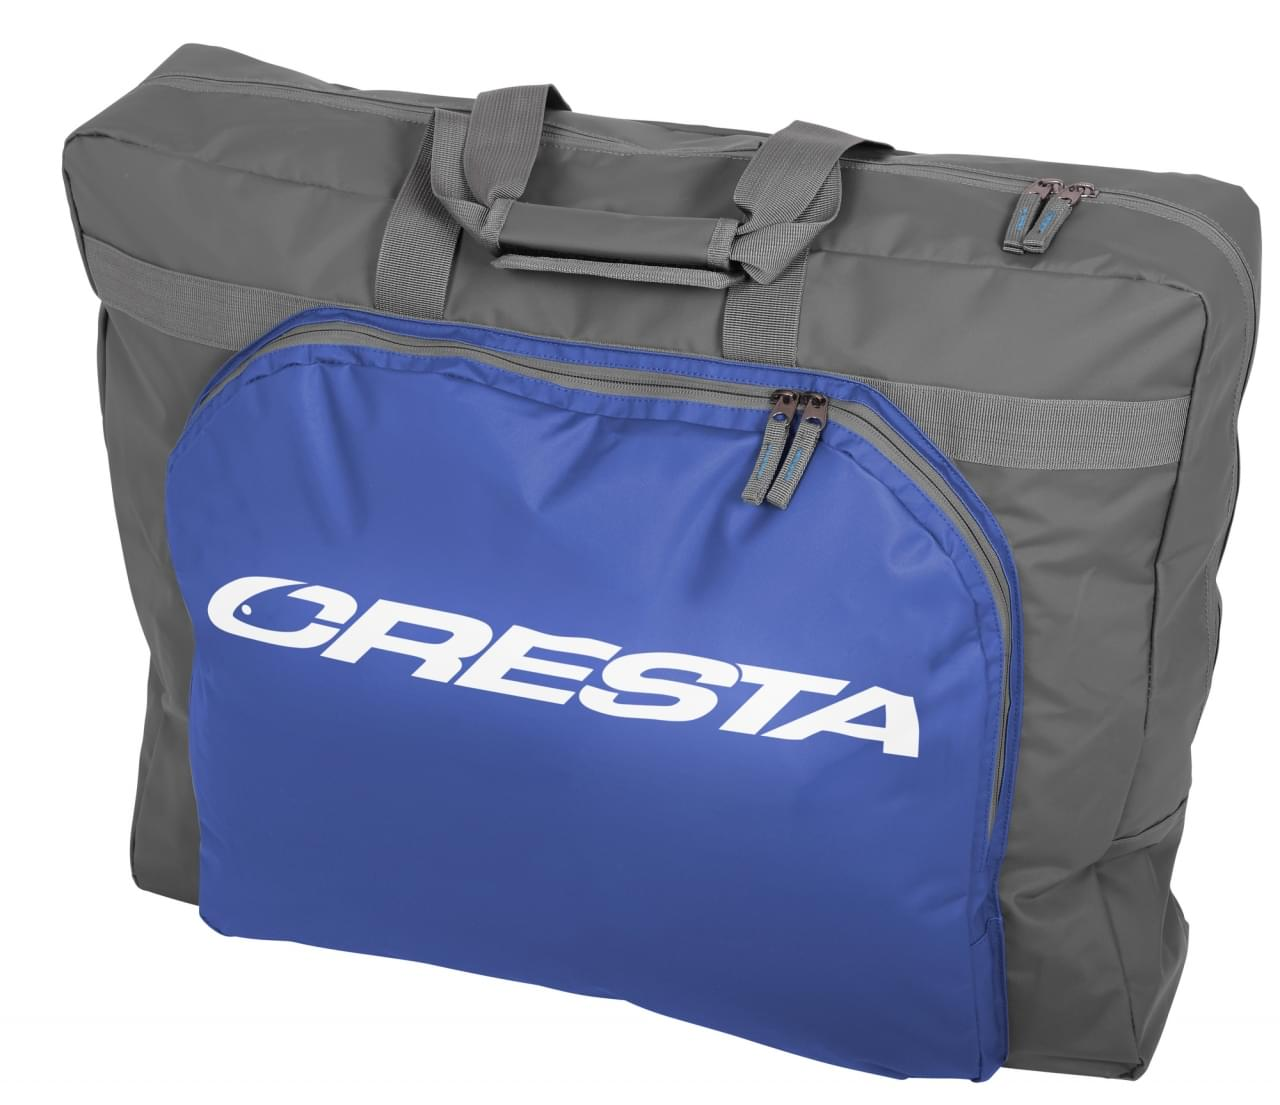 Cresta Competition Rectangular Single Net Bag